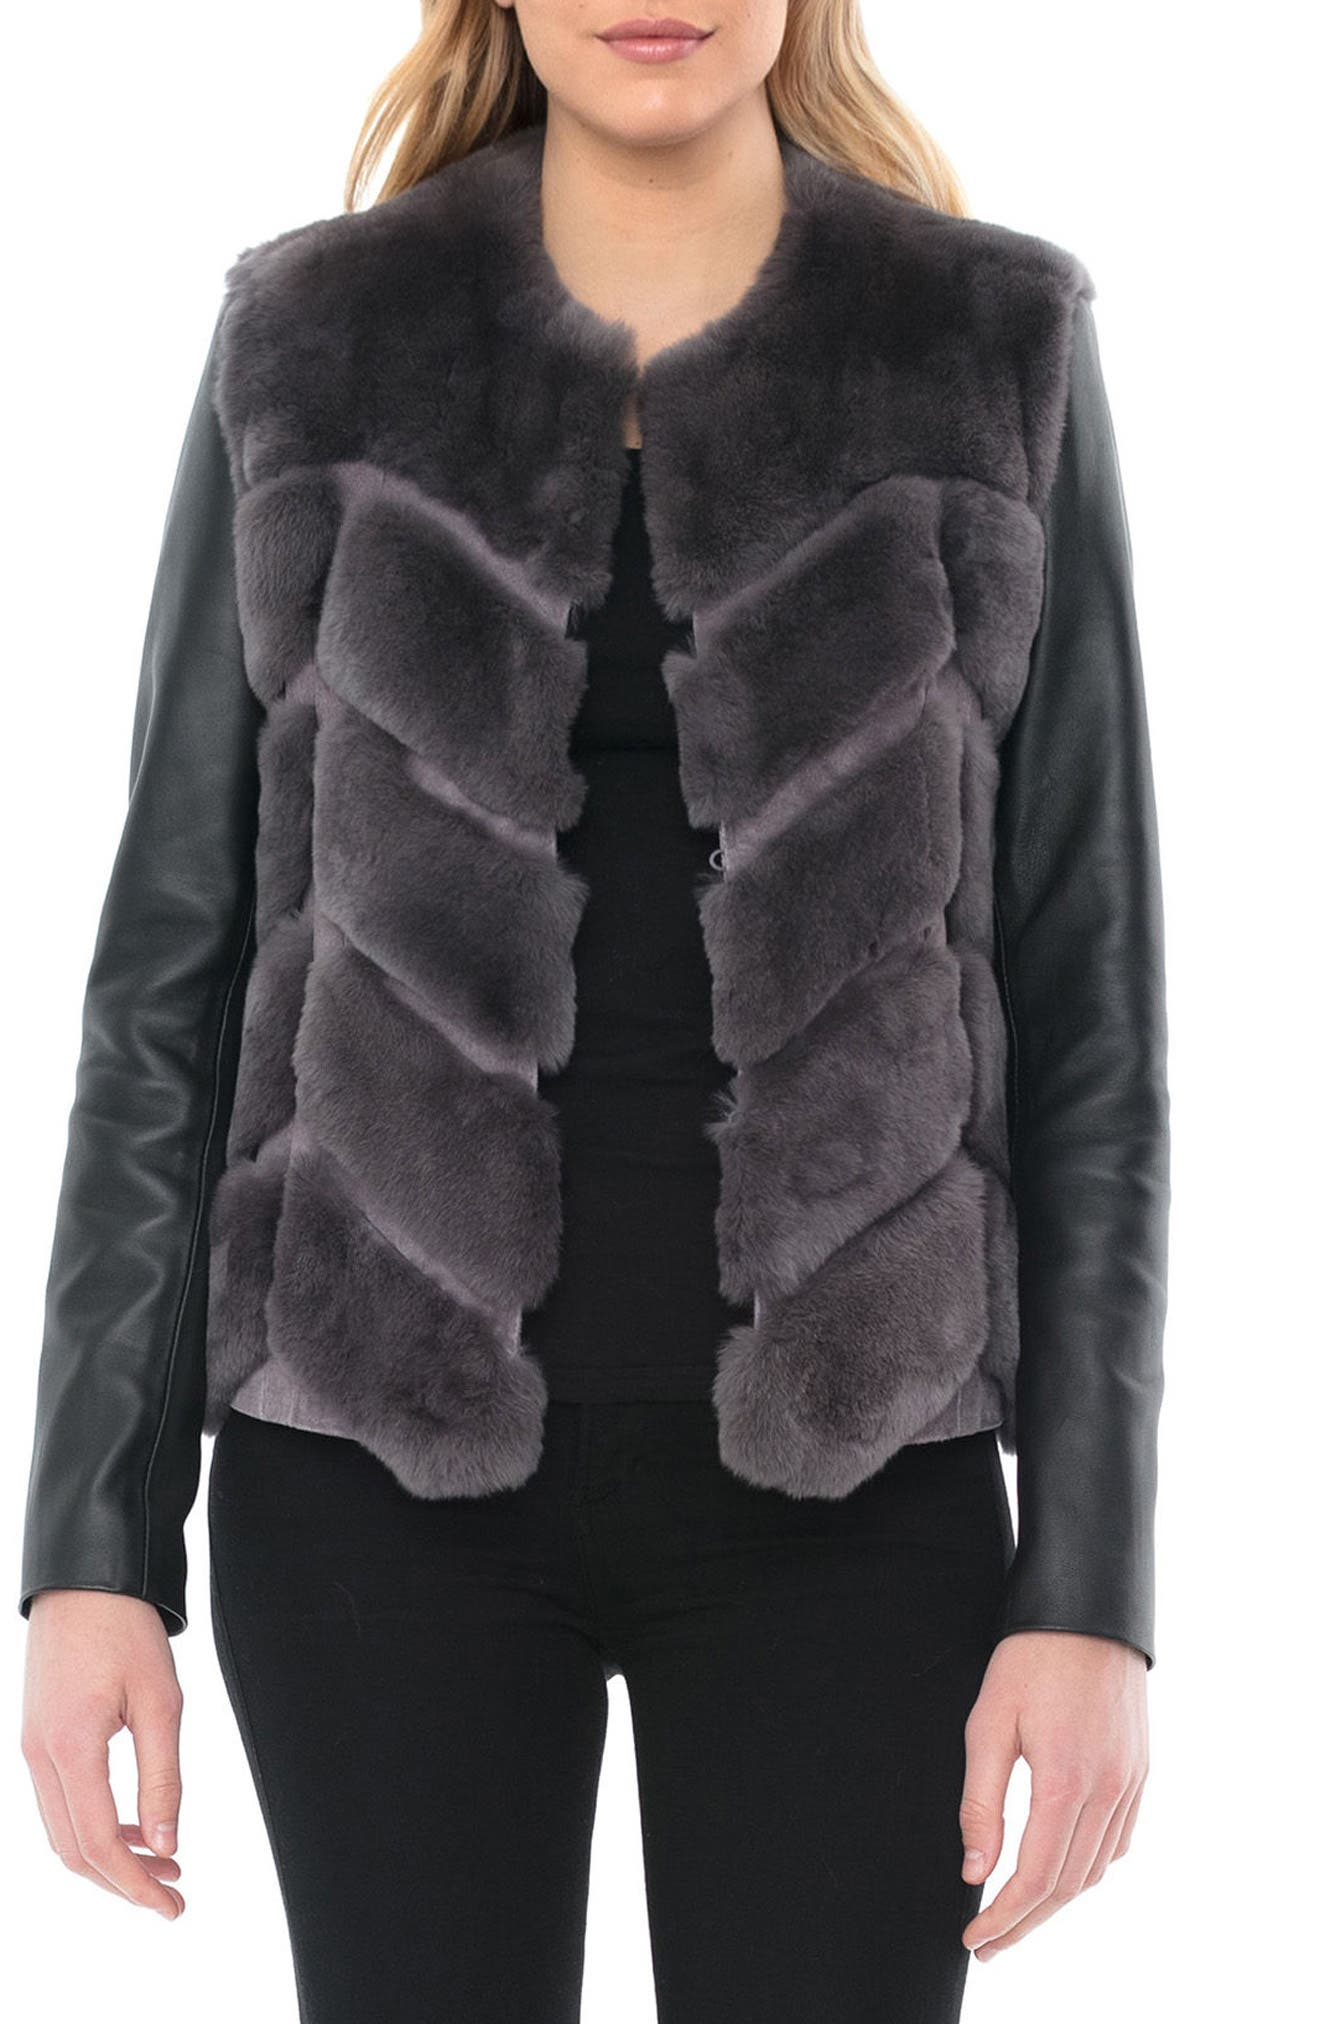 Alternate Image 1 Selected - Badgley Mischka Genuine Rabbit Fur & Leather Jacket